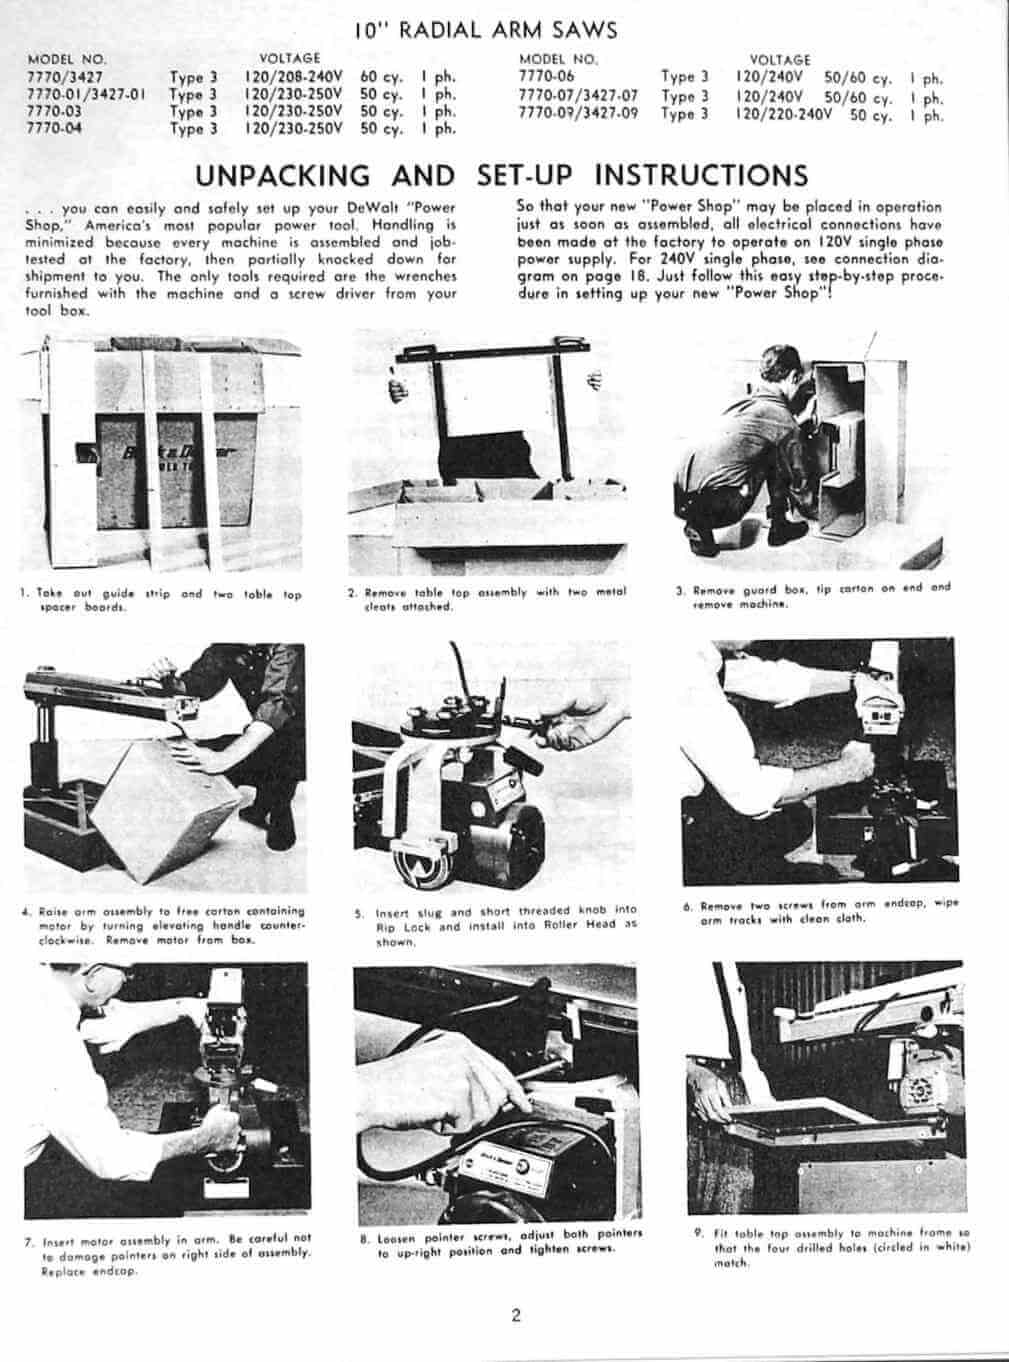 hight resolution of dewalt 7770 10 inch radial arm saw owner s instructions and parts manual